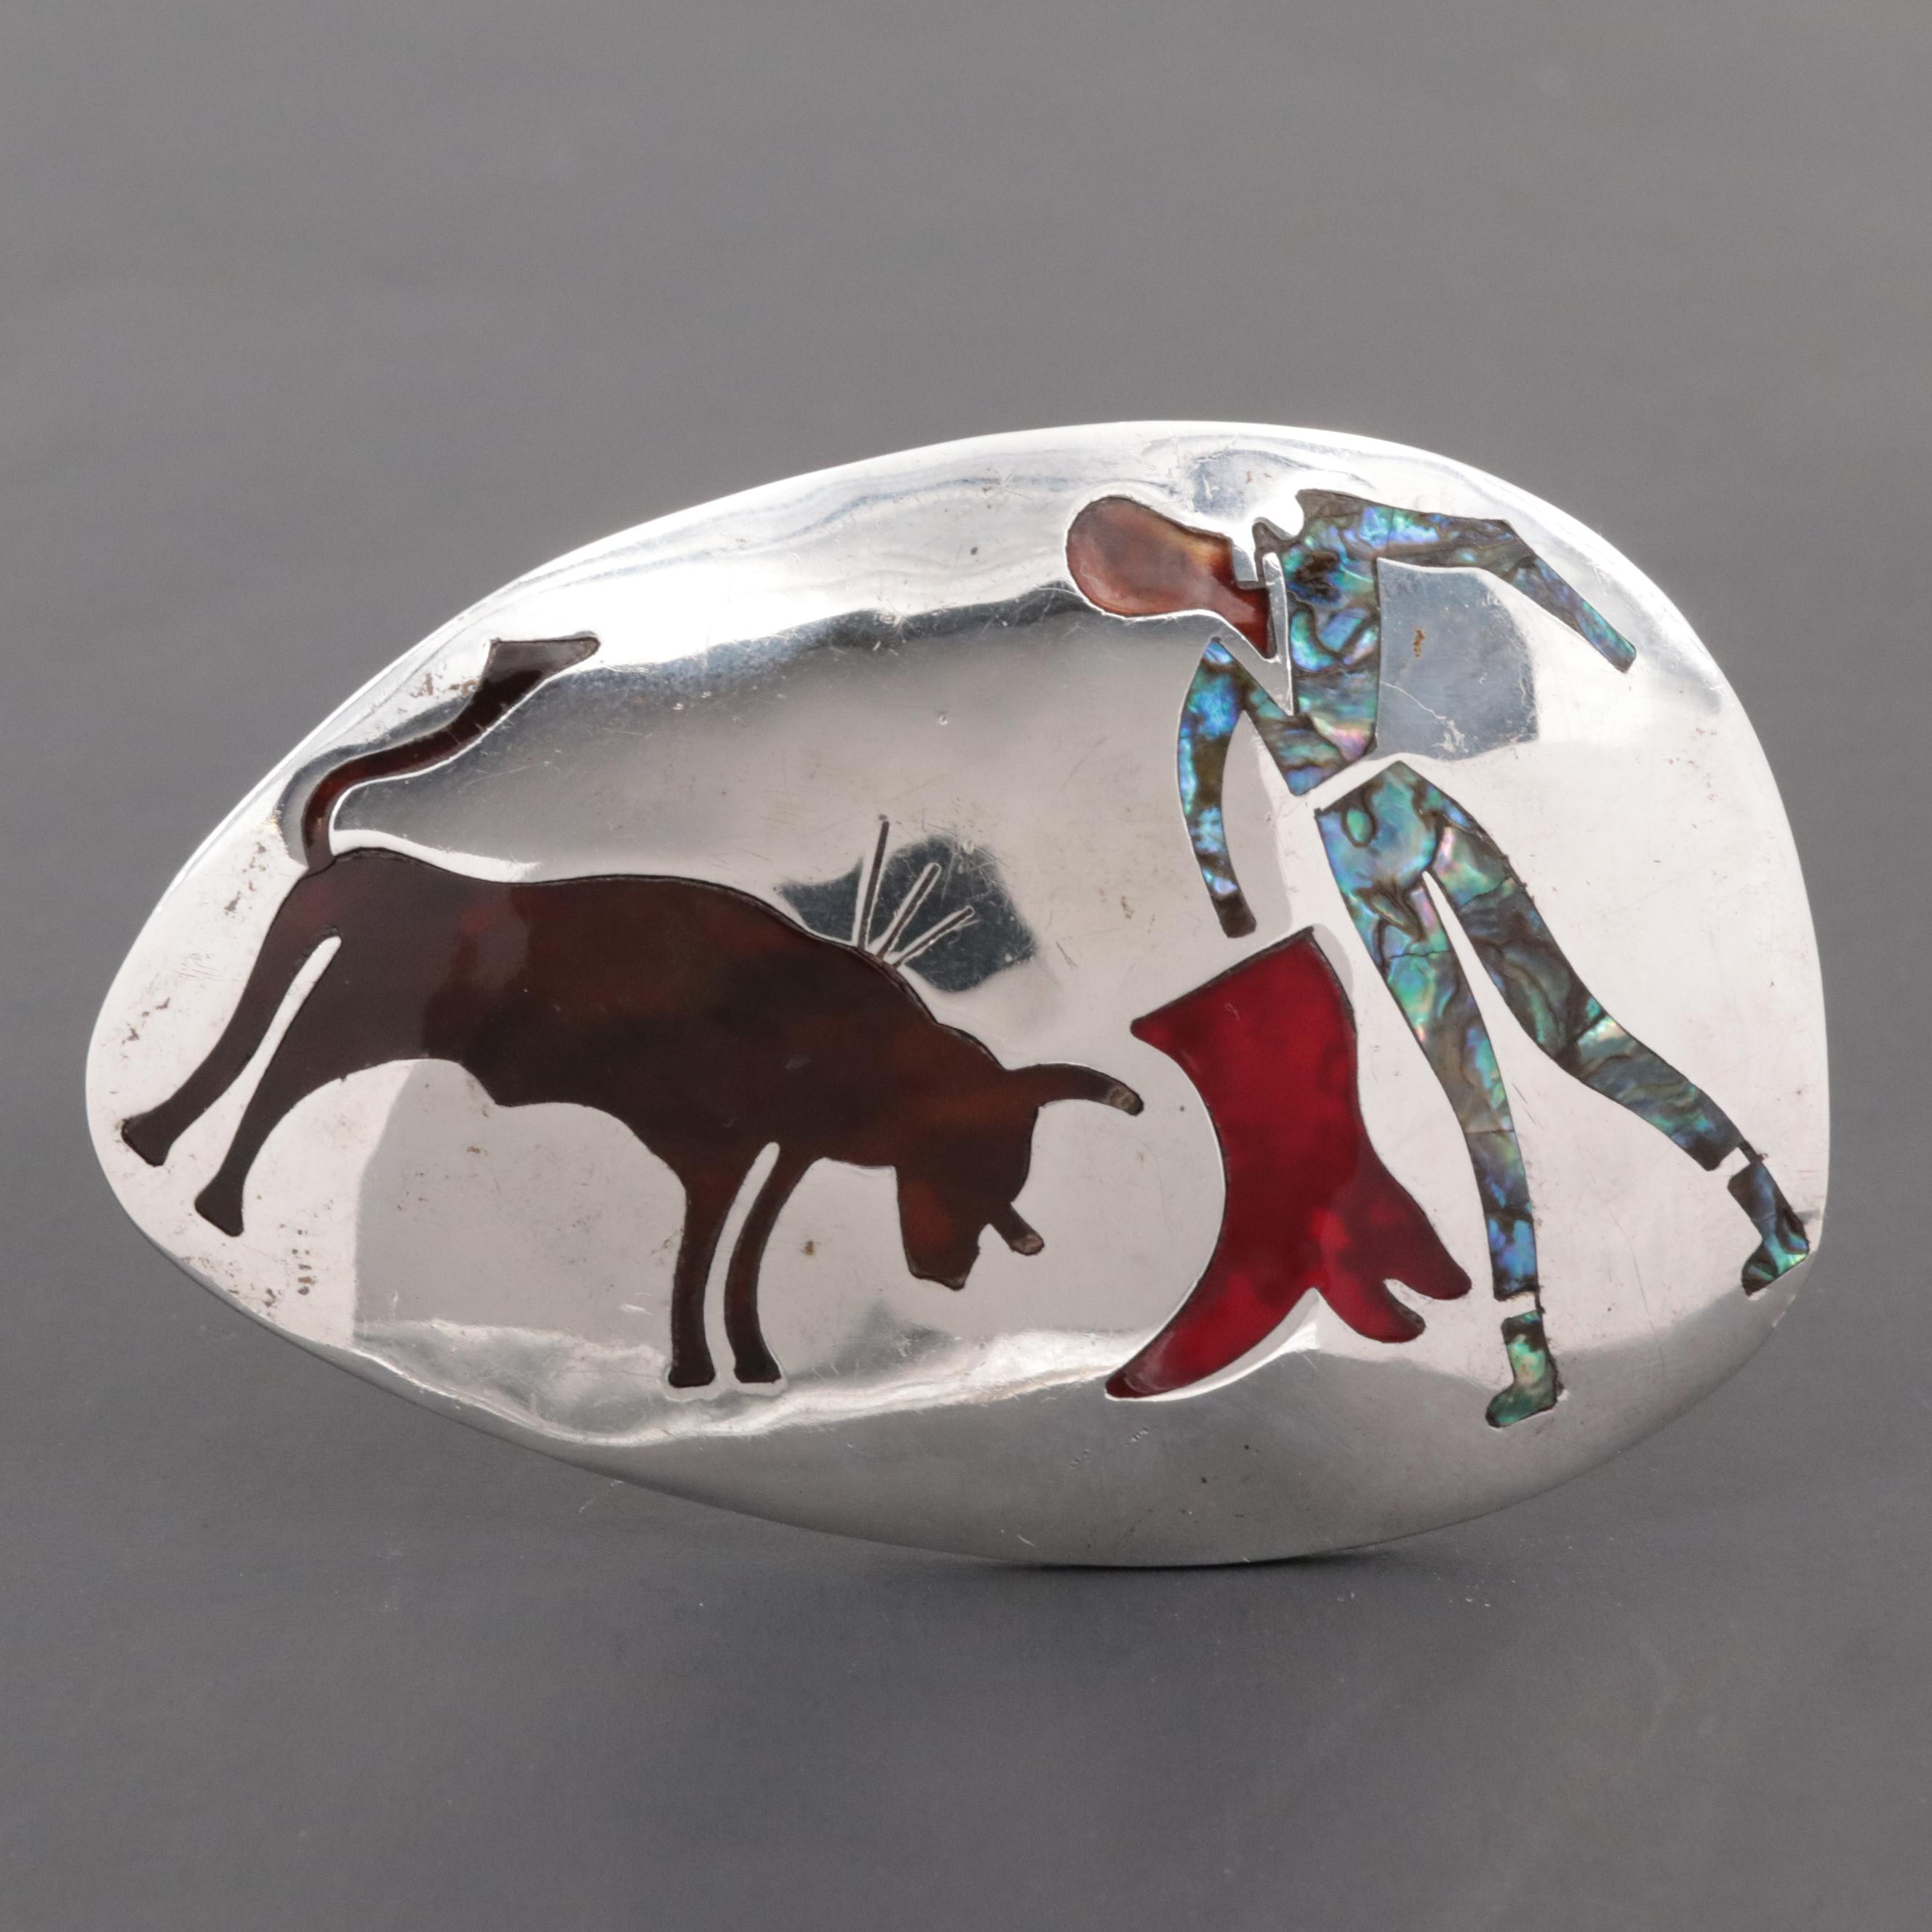 Mexican Sterling Silver Converter Brooch with Inlaid Abalone and Resin Enamel